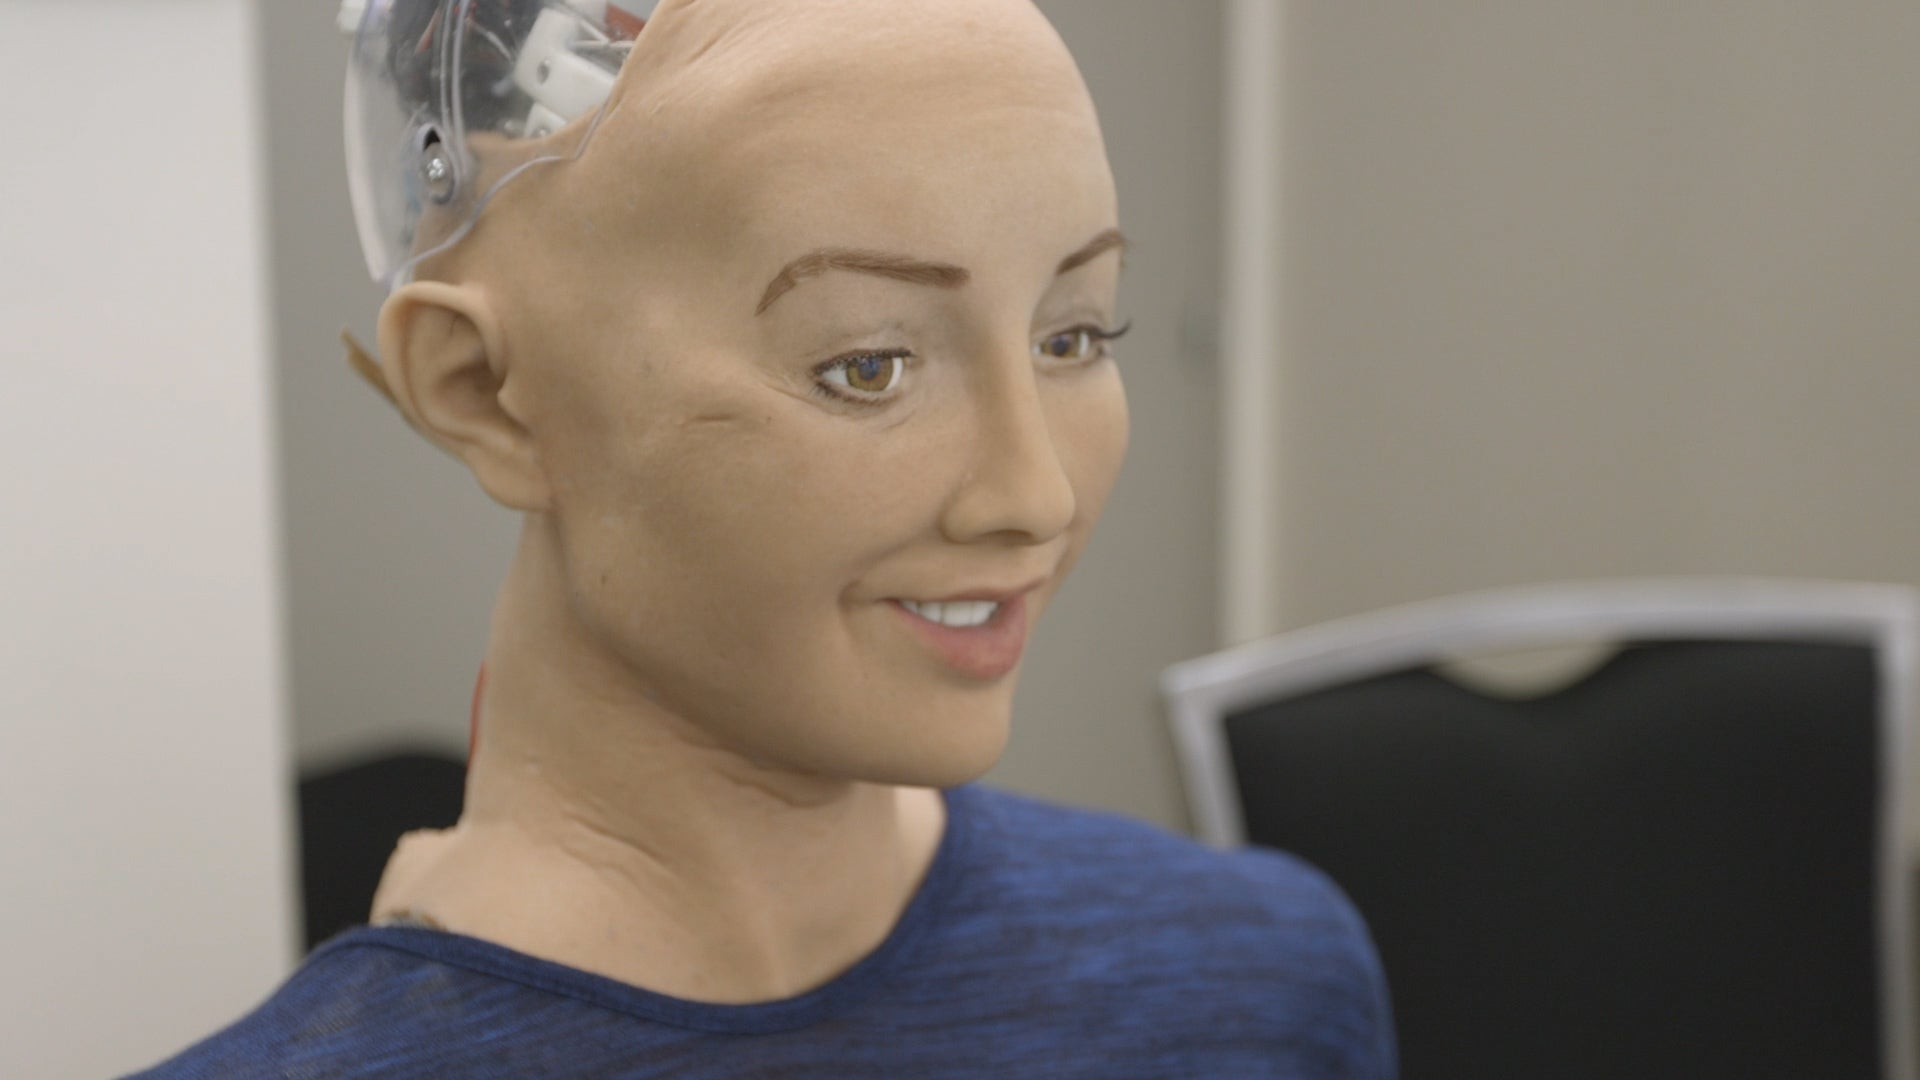 Meet Sophia The Female Humanoid Robot And Newest Sxsw Celebrity